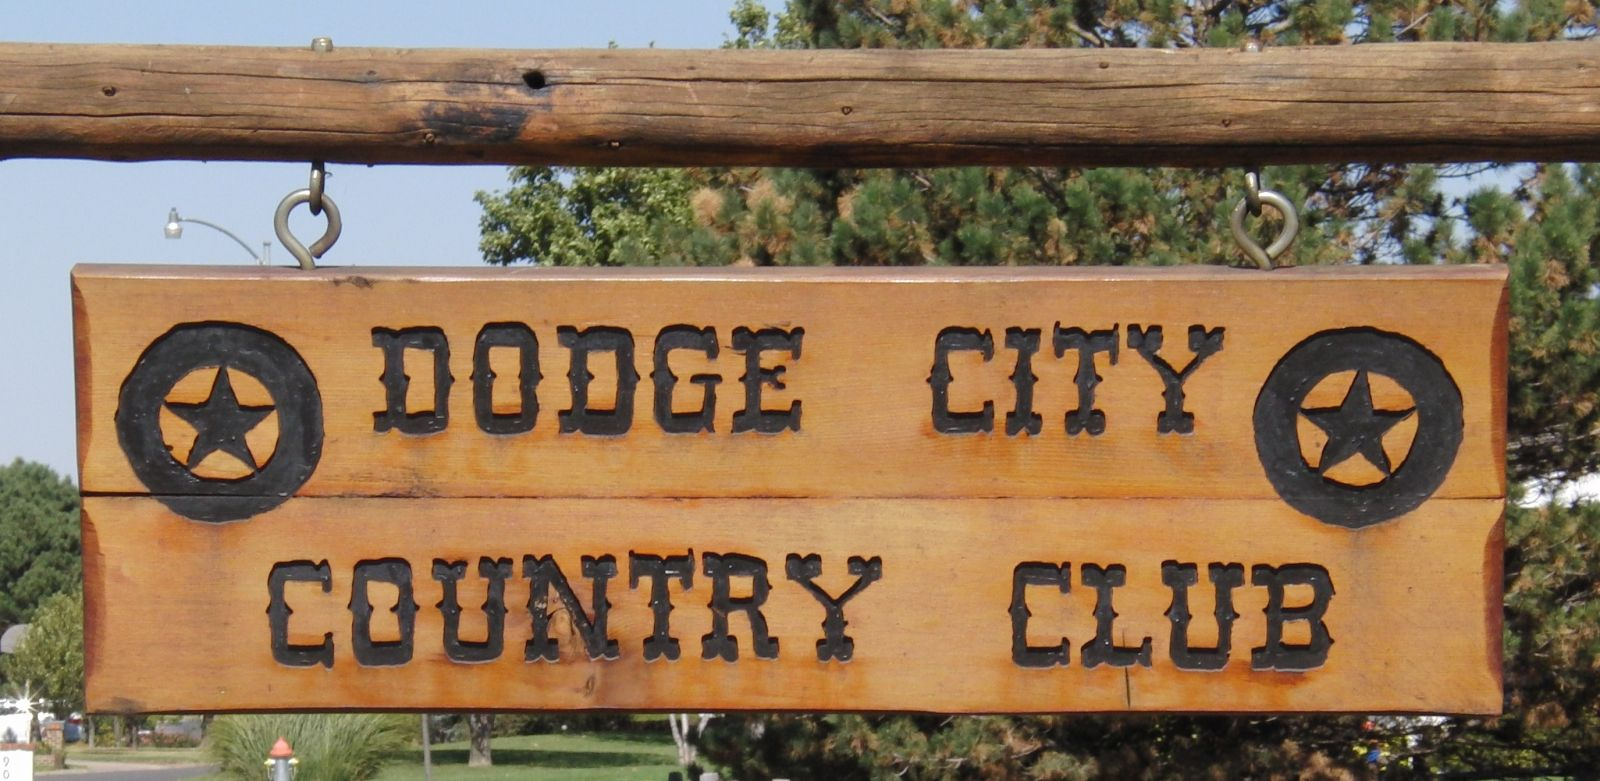 meet dodge city singles Sign up for free to find a farmer, rancher, cowboy, cowgirl or animal lover here at farmersonlycom, an online dating site meant for down to earth folks only.